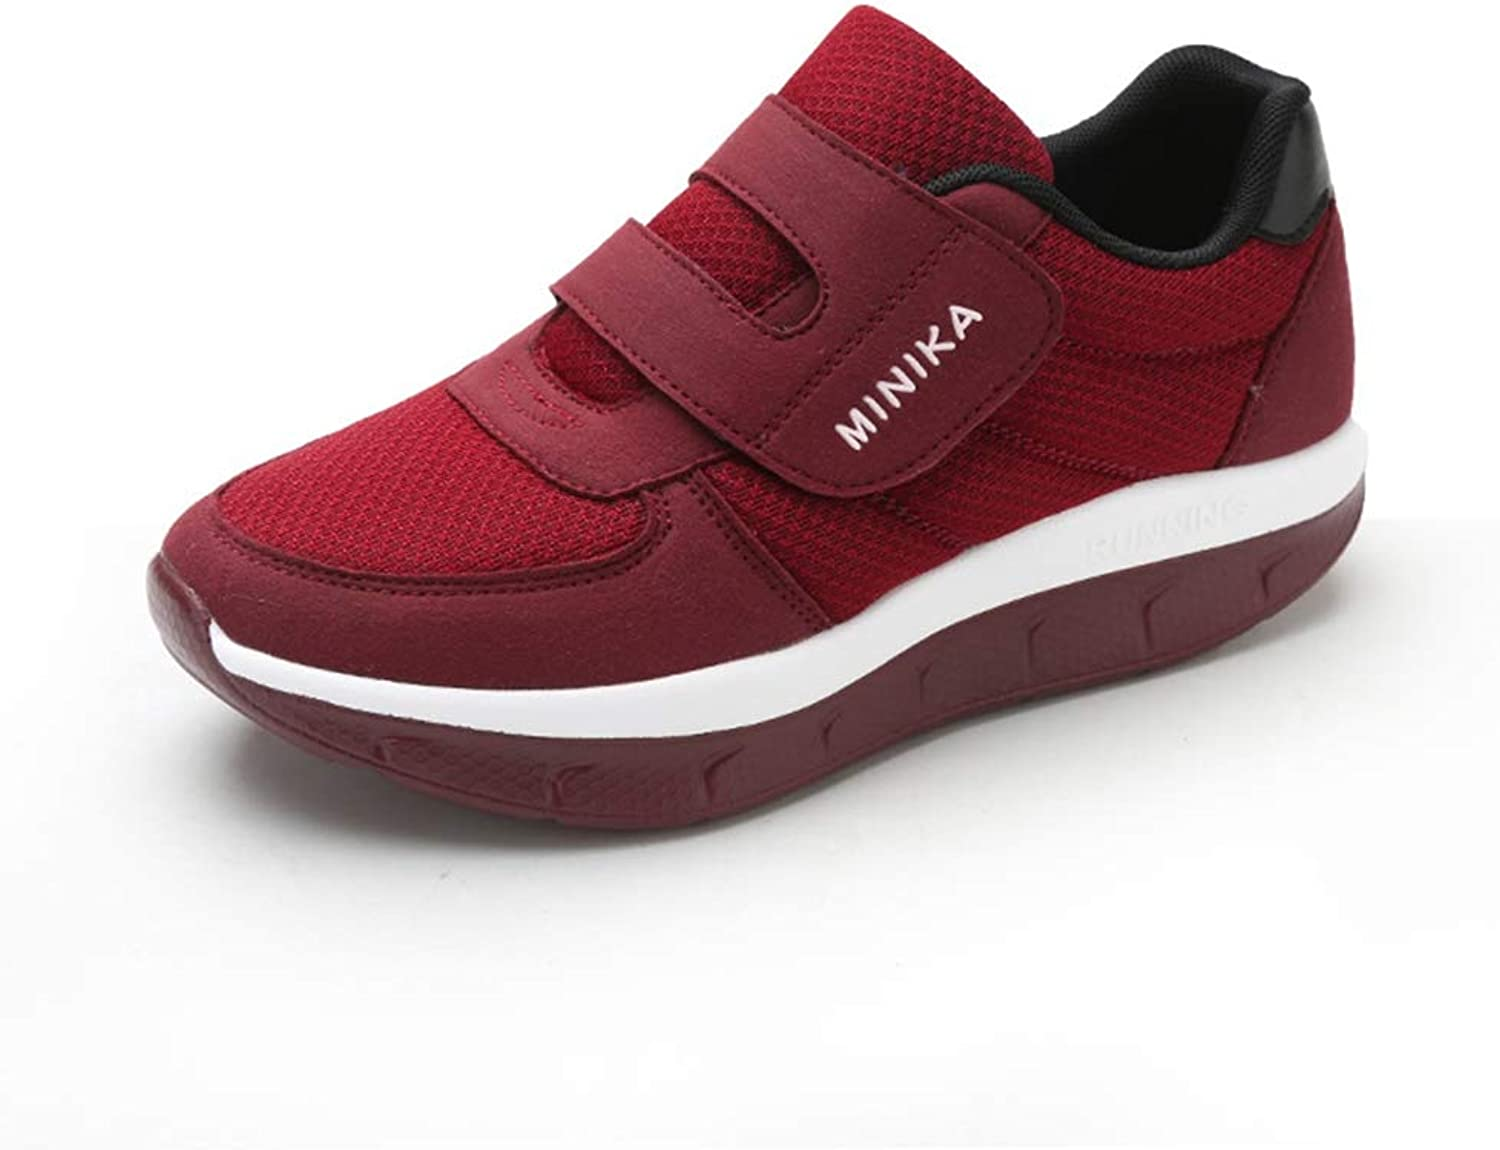 ASO-SLING Women's Wedge Sneakers Platform Toning Fitness shoes Slimming Sneakers Lightweight Swing shoes